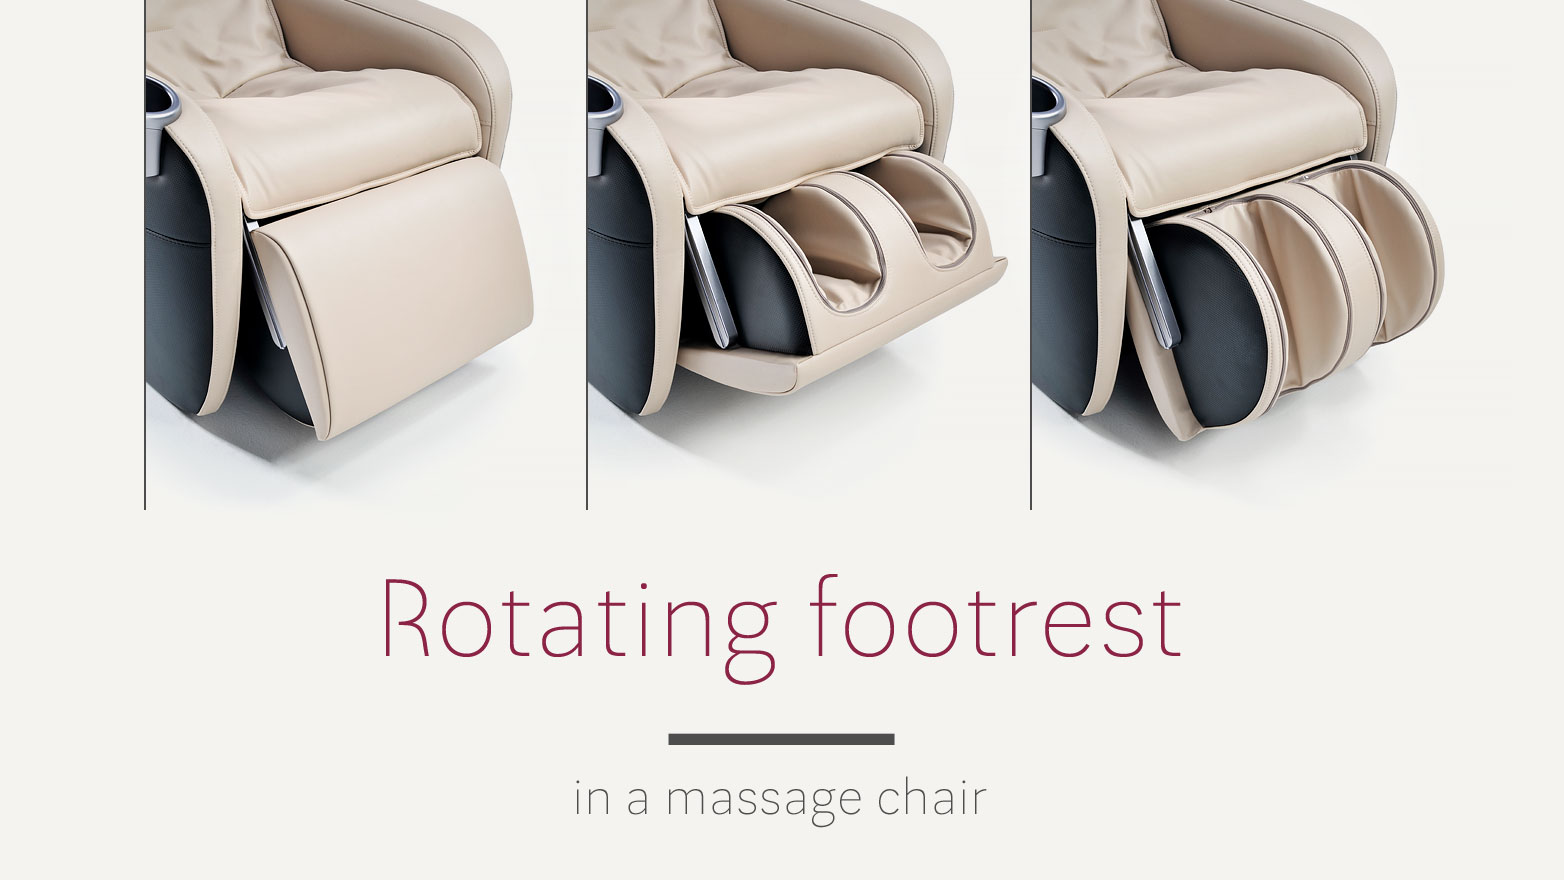 Rotating footrest in massage chairs Rest Lords